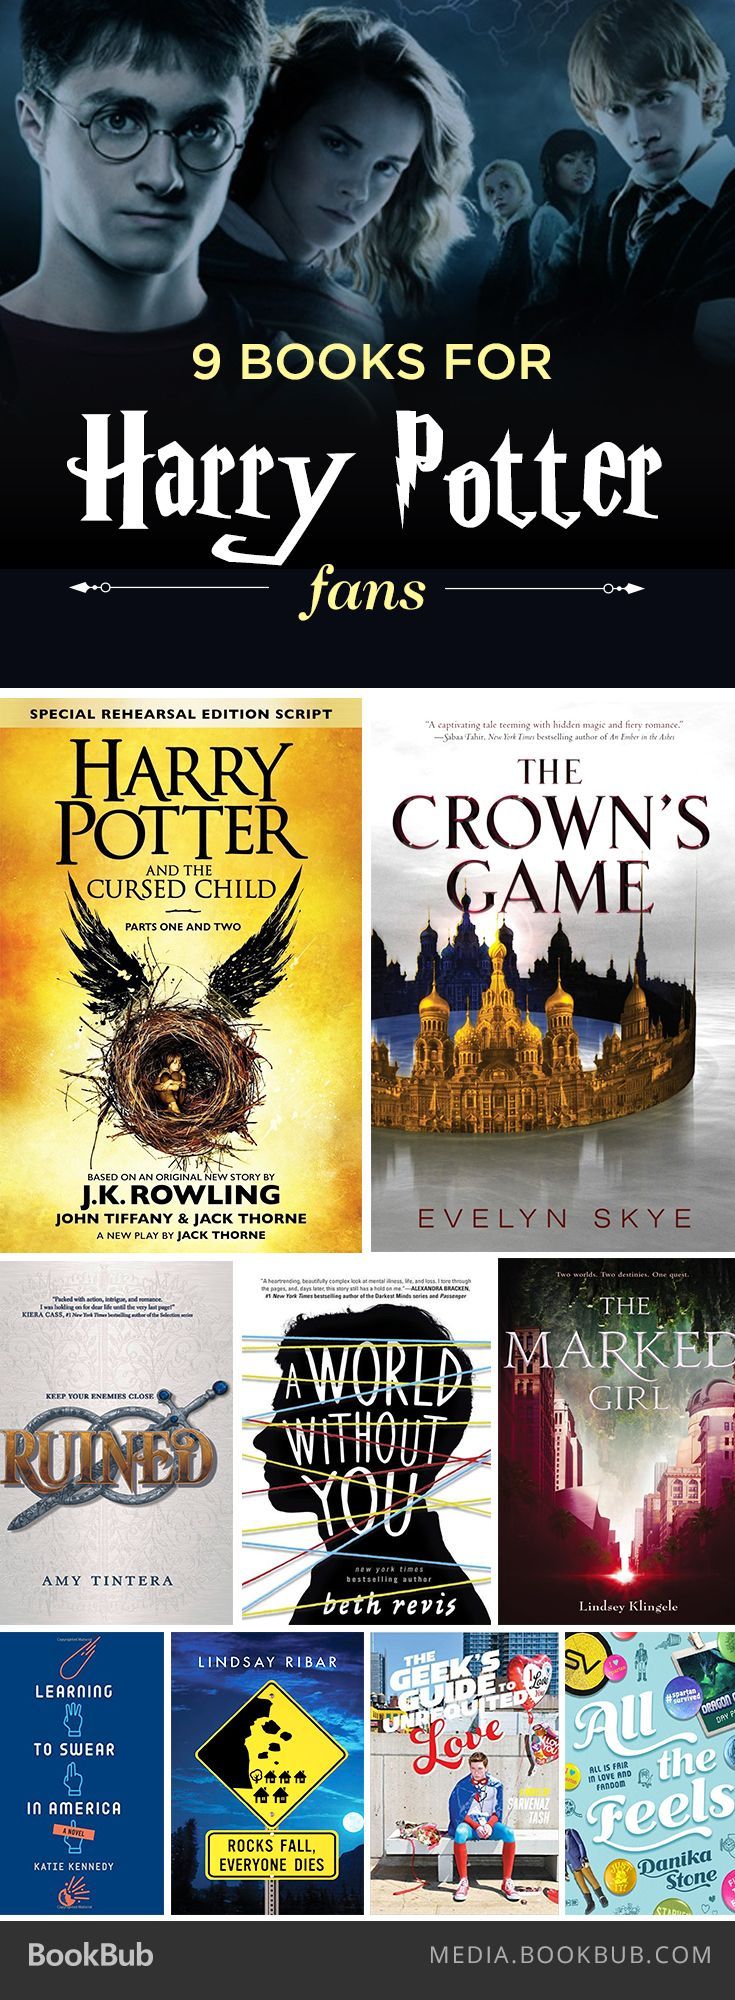 If You Love Harry Potter, Check Out These 9 Recommended Books